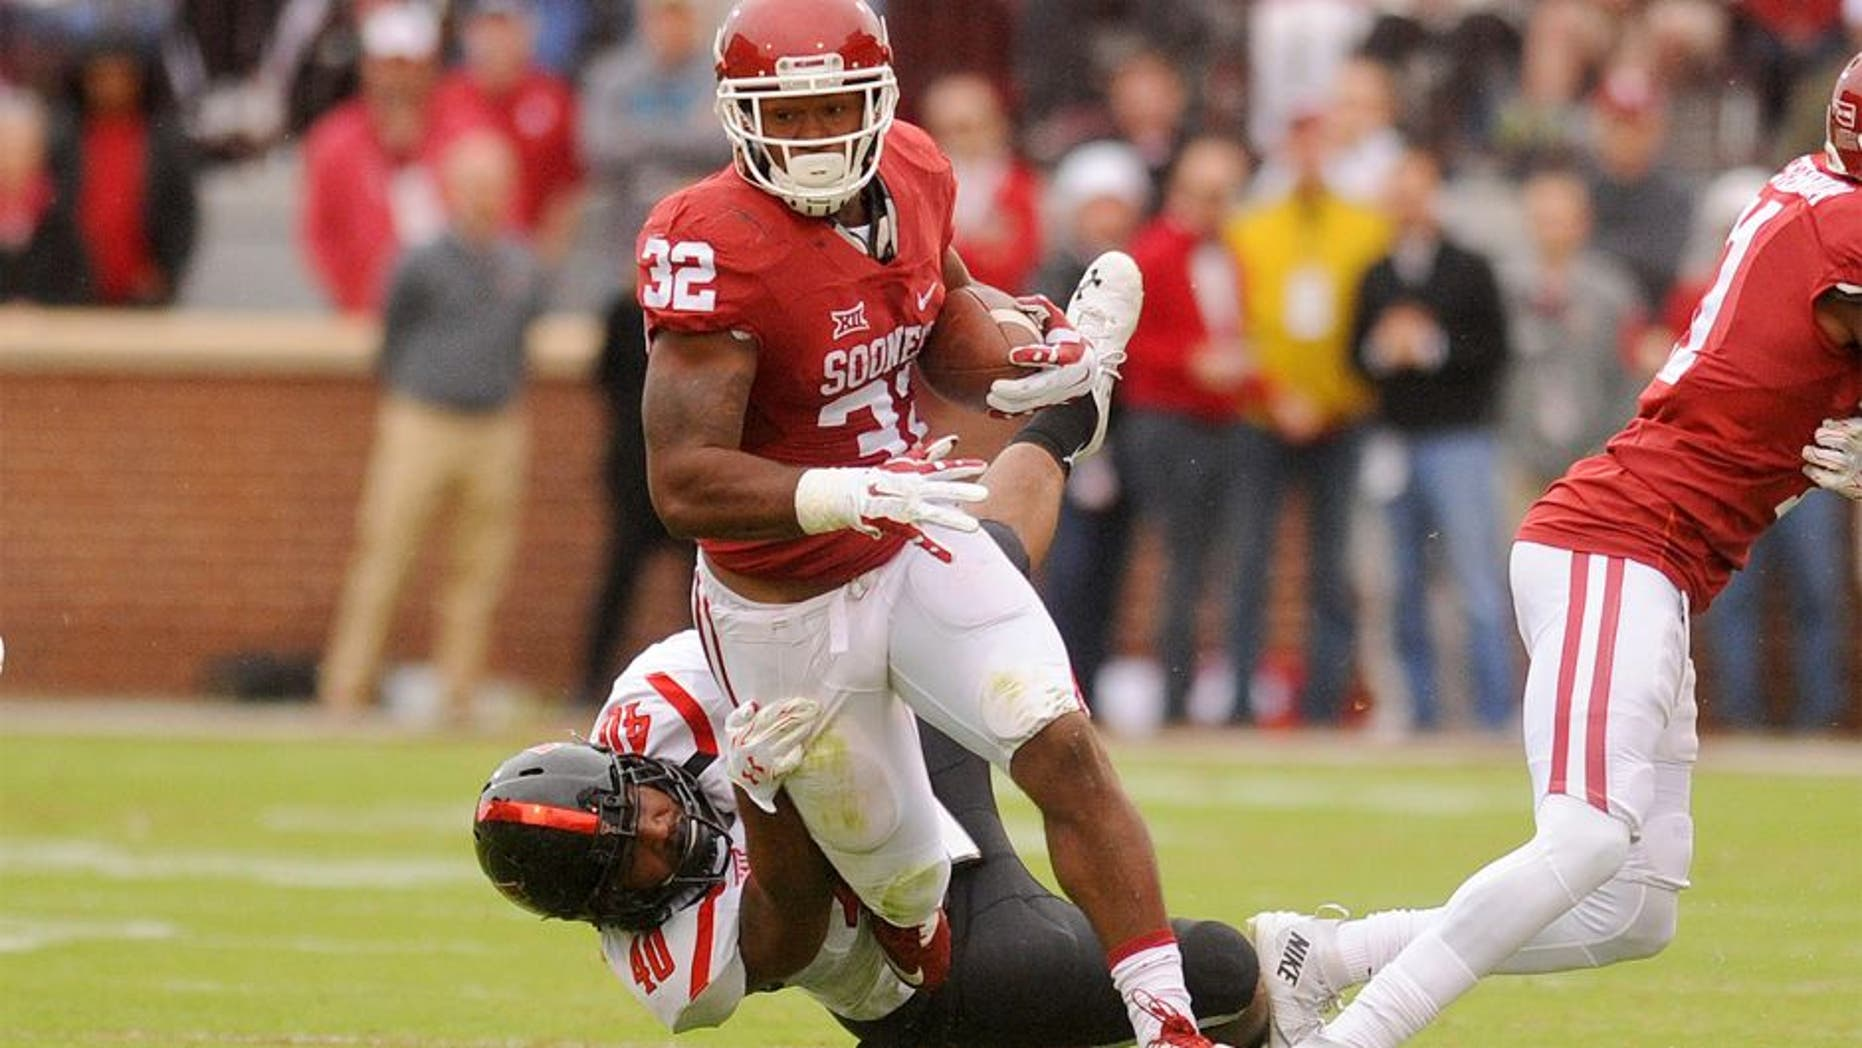 Oct 24, 2015; Norman, OK, USA; Oklahoma Sooners running back Samaje Perine (32) runs through a tackle attempt by Texas Tech Red Raiders linebacker Dakota Allen (40) during the second quarter at Gaylord Family - Oklahoma Memorial Stadium. Mandatory Credit: Mark D. Smith-USA TODAY Sports